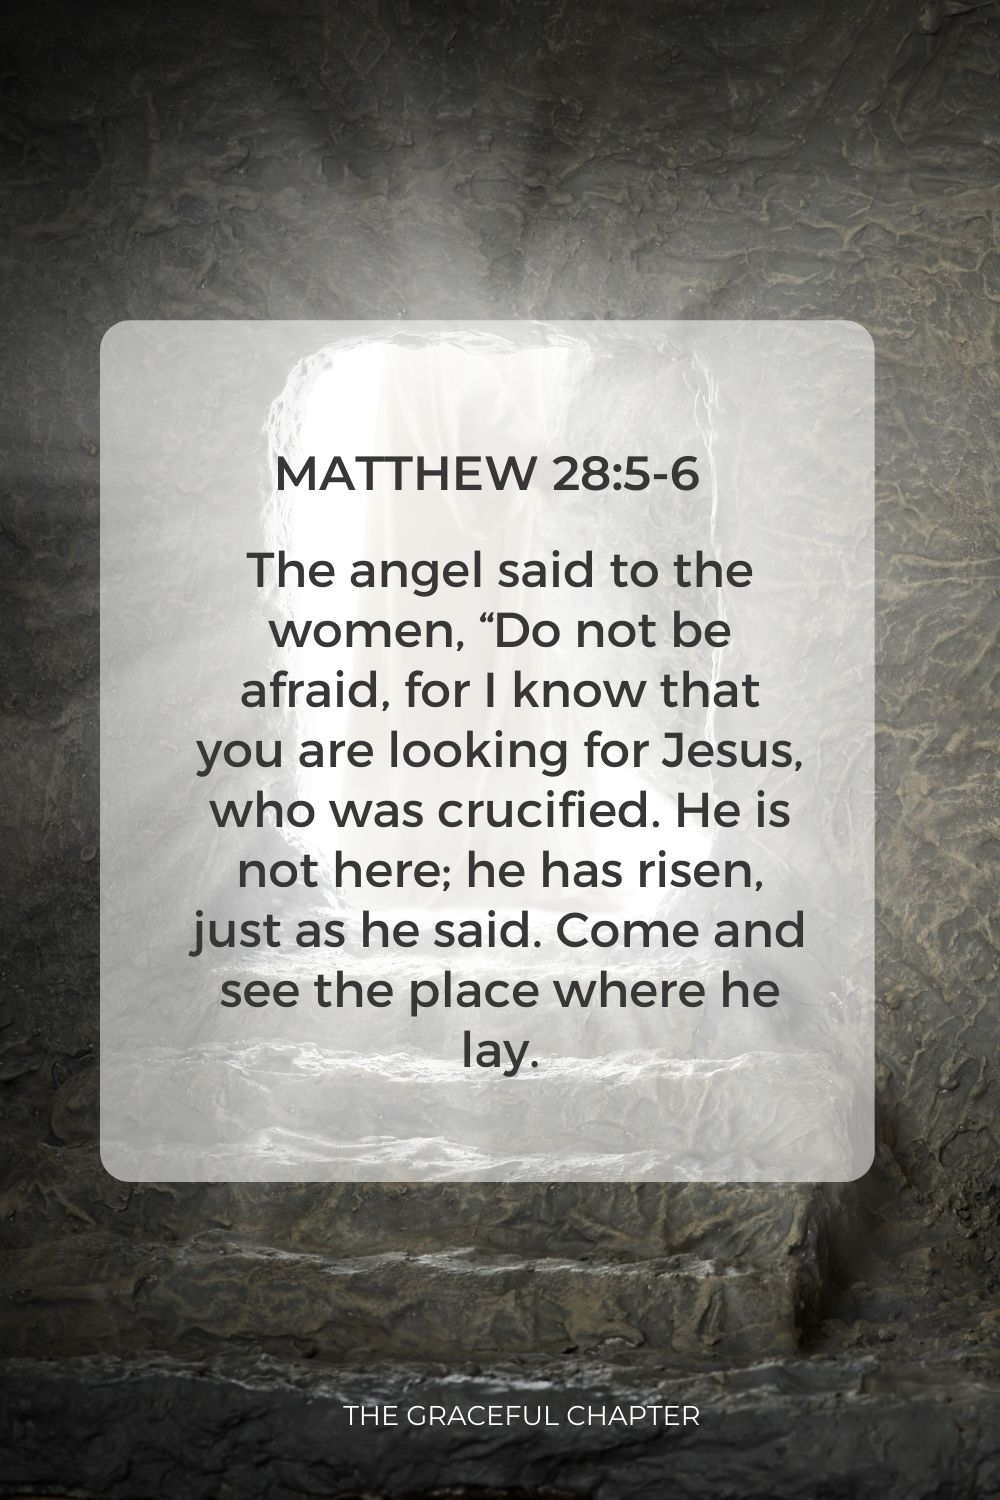 """The angel said to the women, """"Do not be afraid, for I know that you are looking for Jesus, who was crucified. He is not here; he has risen, just as he said. Come and see the place where he lay. Matthew 28:5-6"""